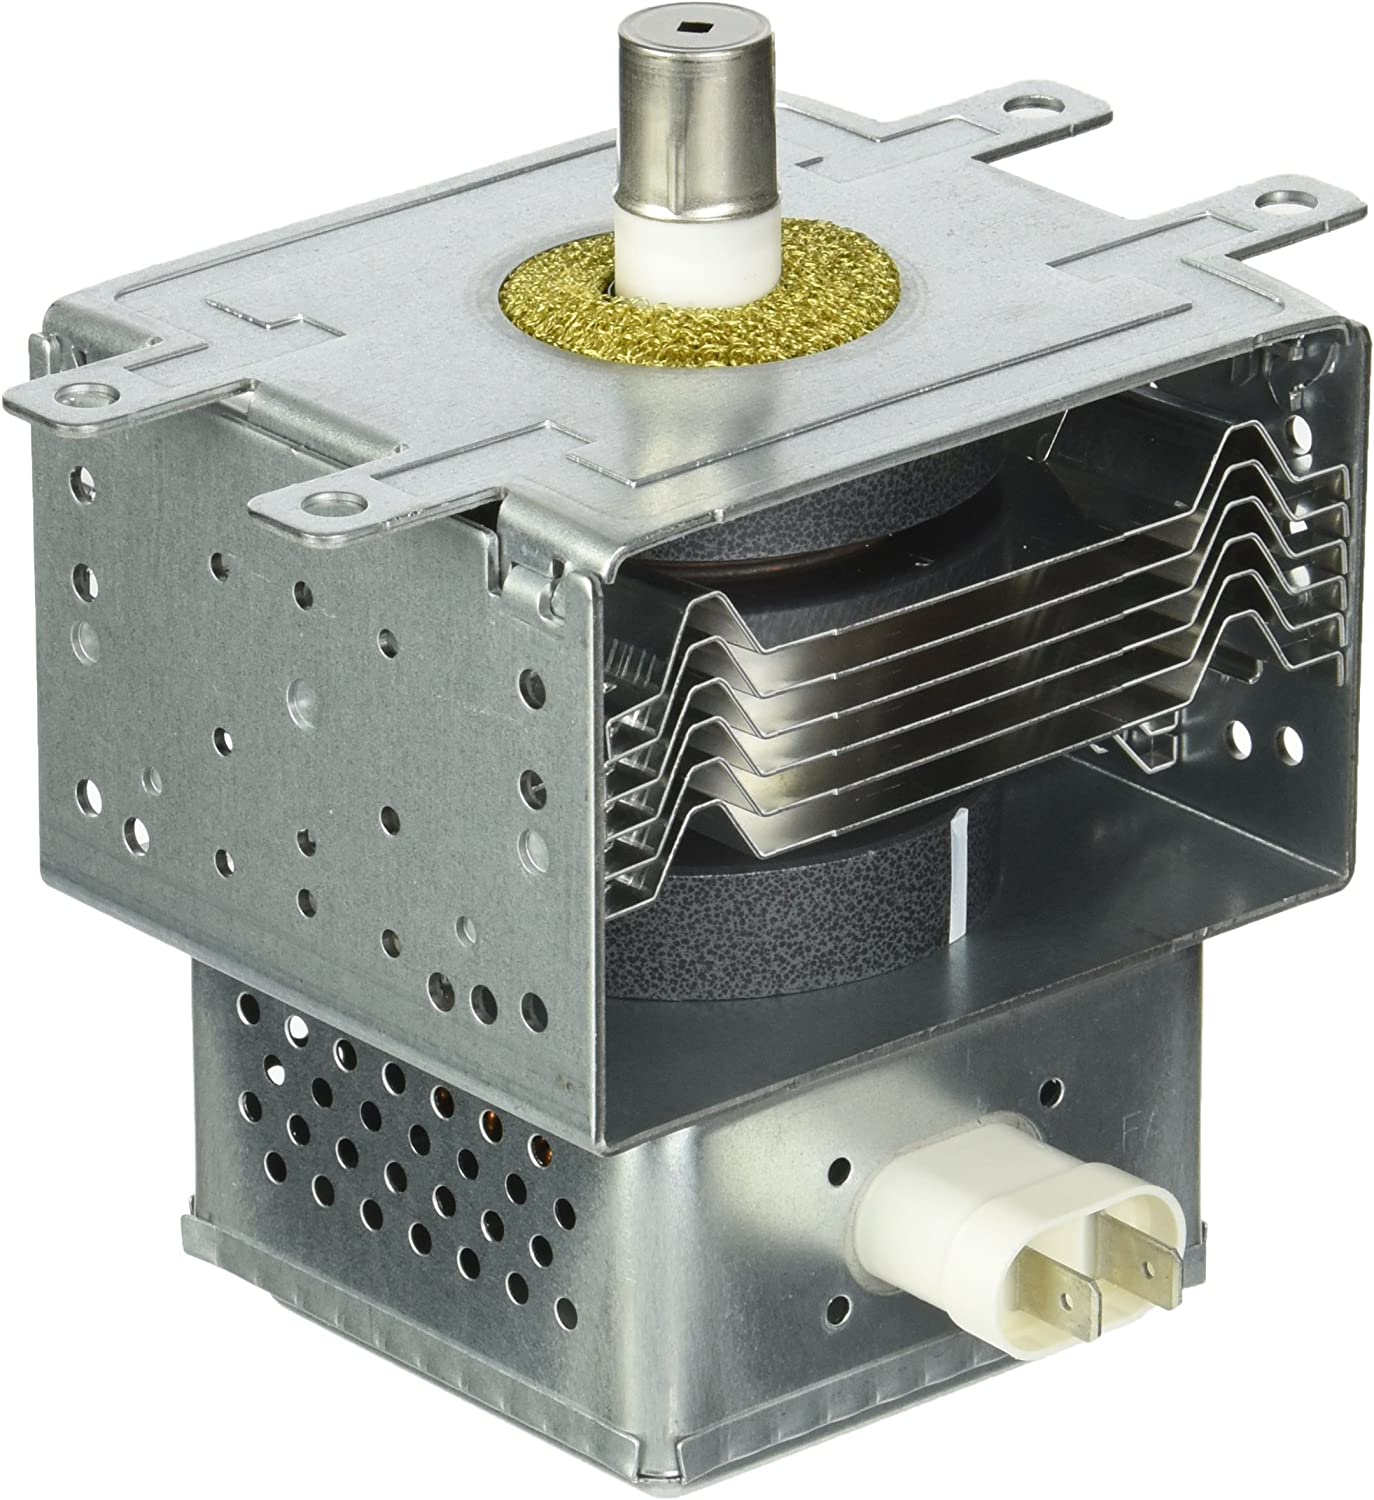 Whirlpool Challenge the lowest price Part Number Phoenix Mall 8206317: MAGNETRON